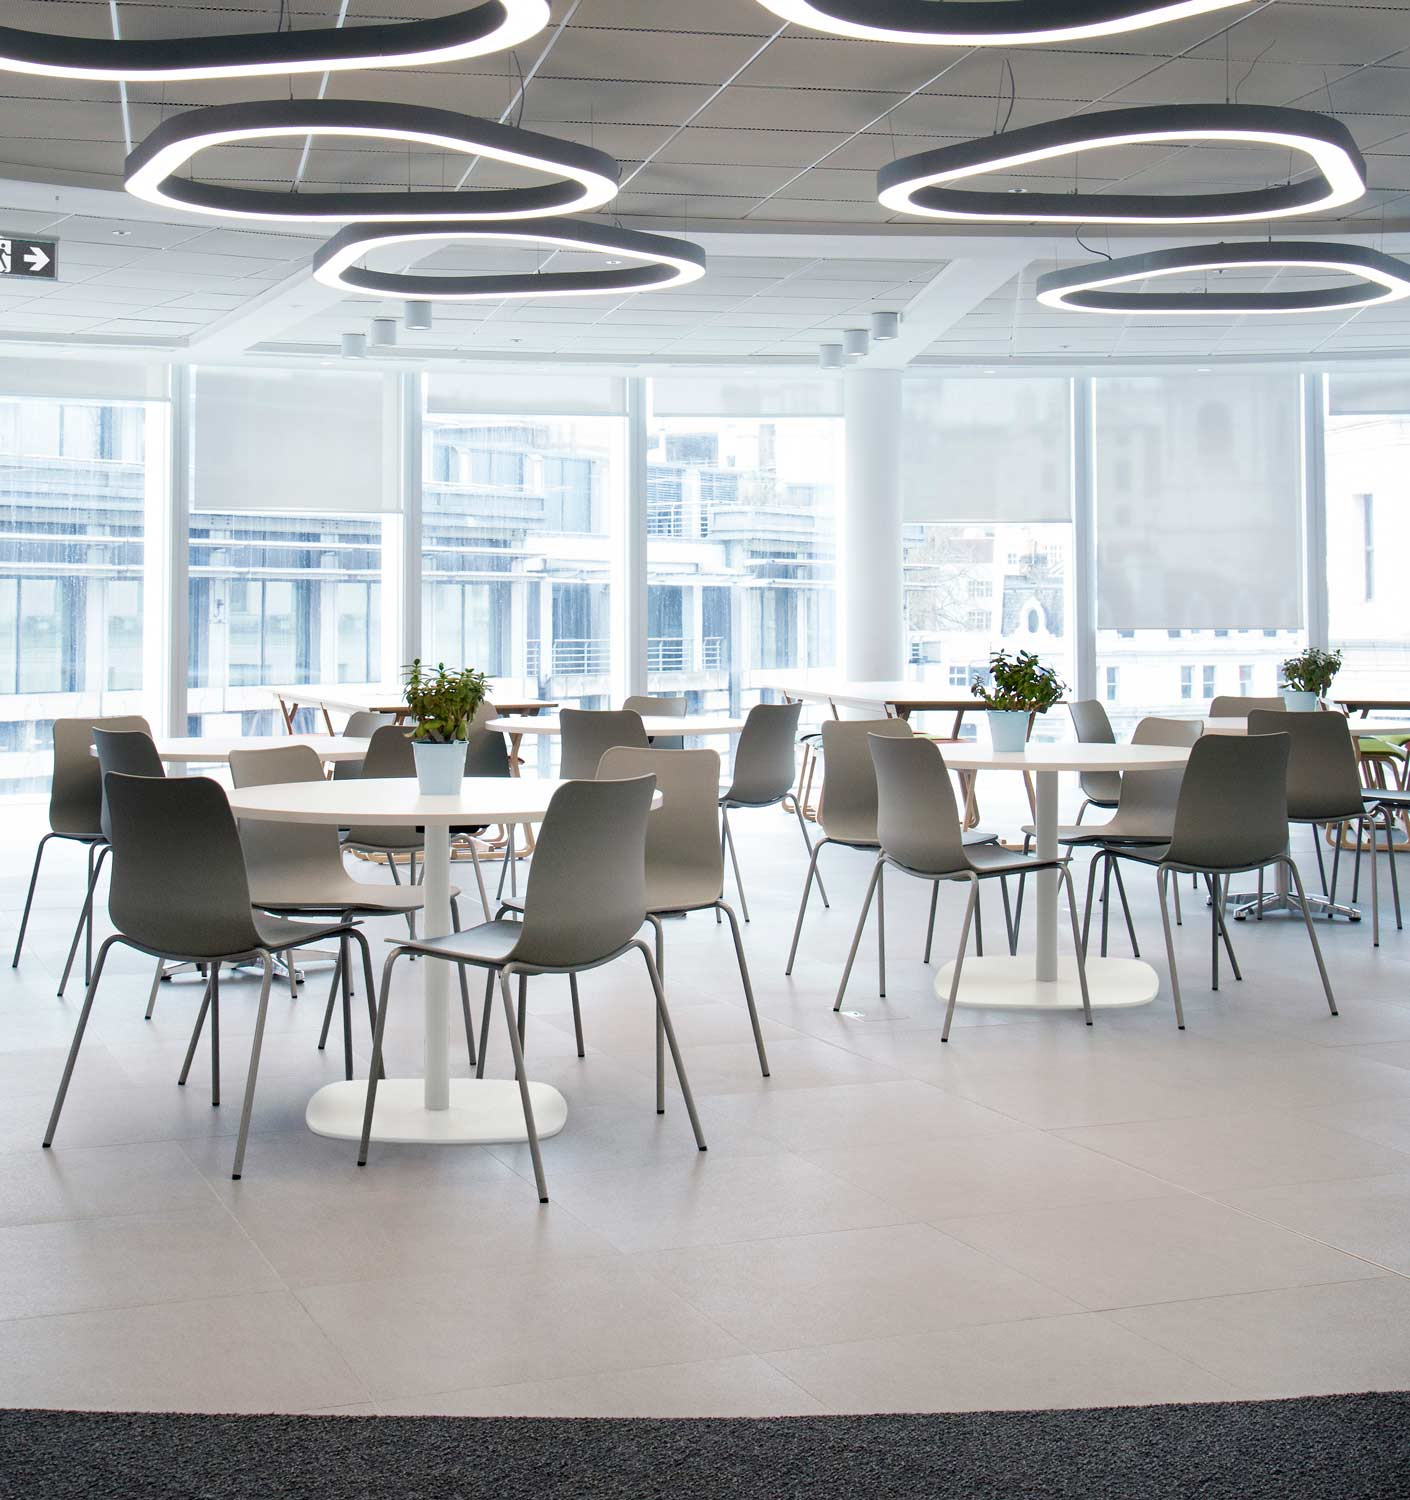 Polly-chairs-and-Ped-tables-in-Canteen